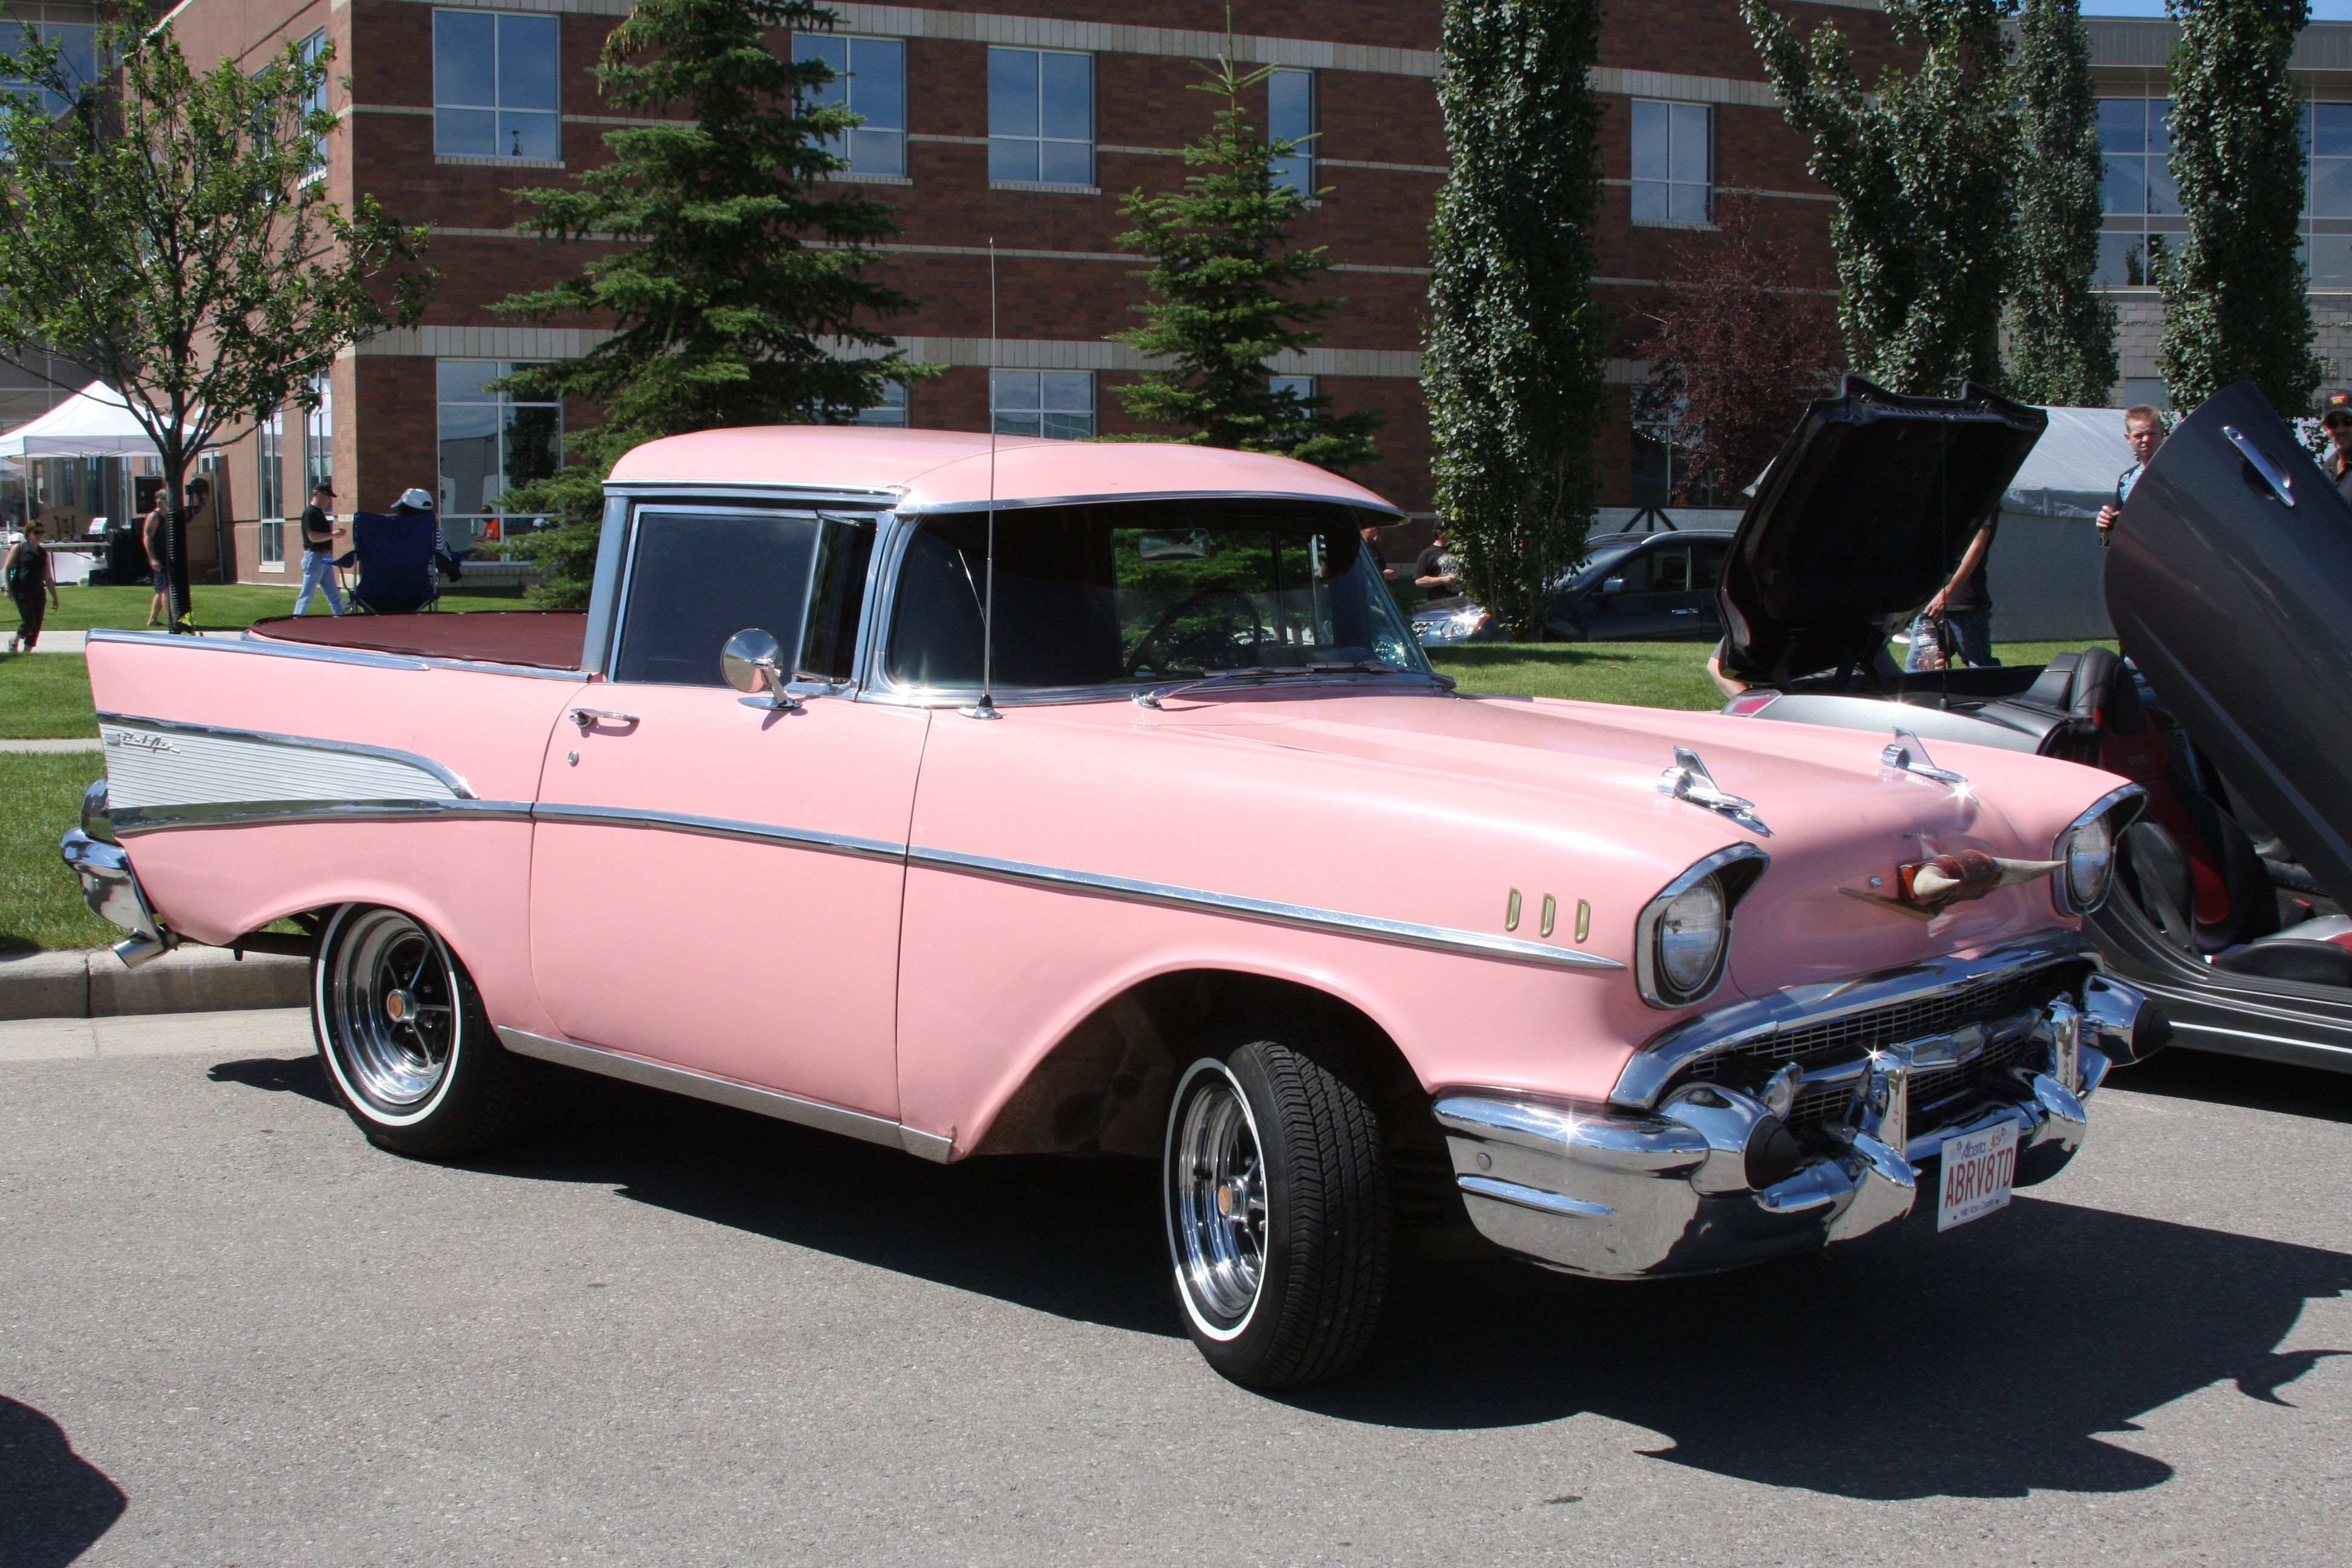 1957 chevrolet bel air converted to a truck